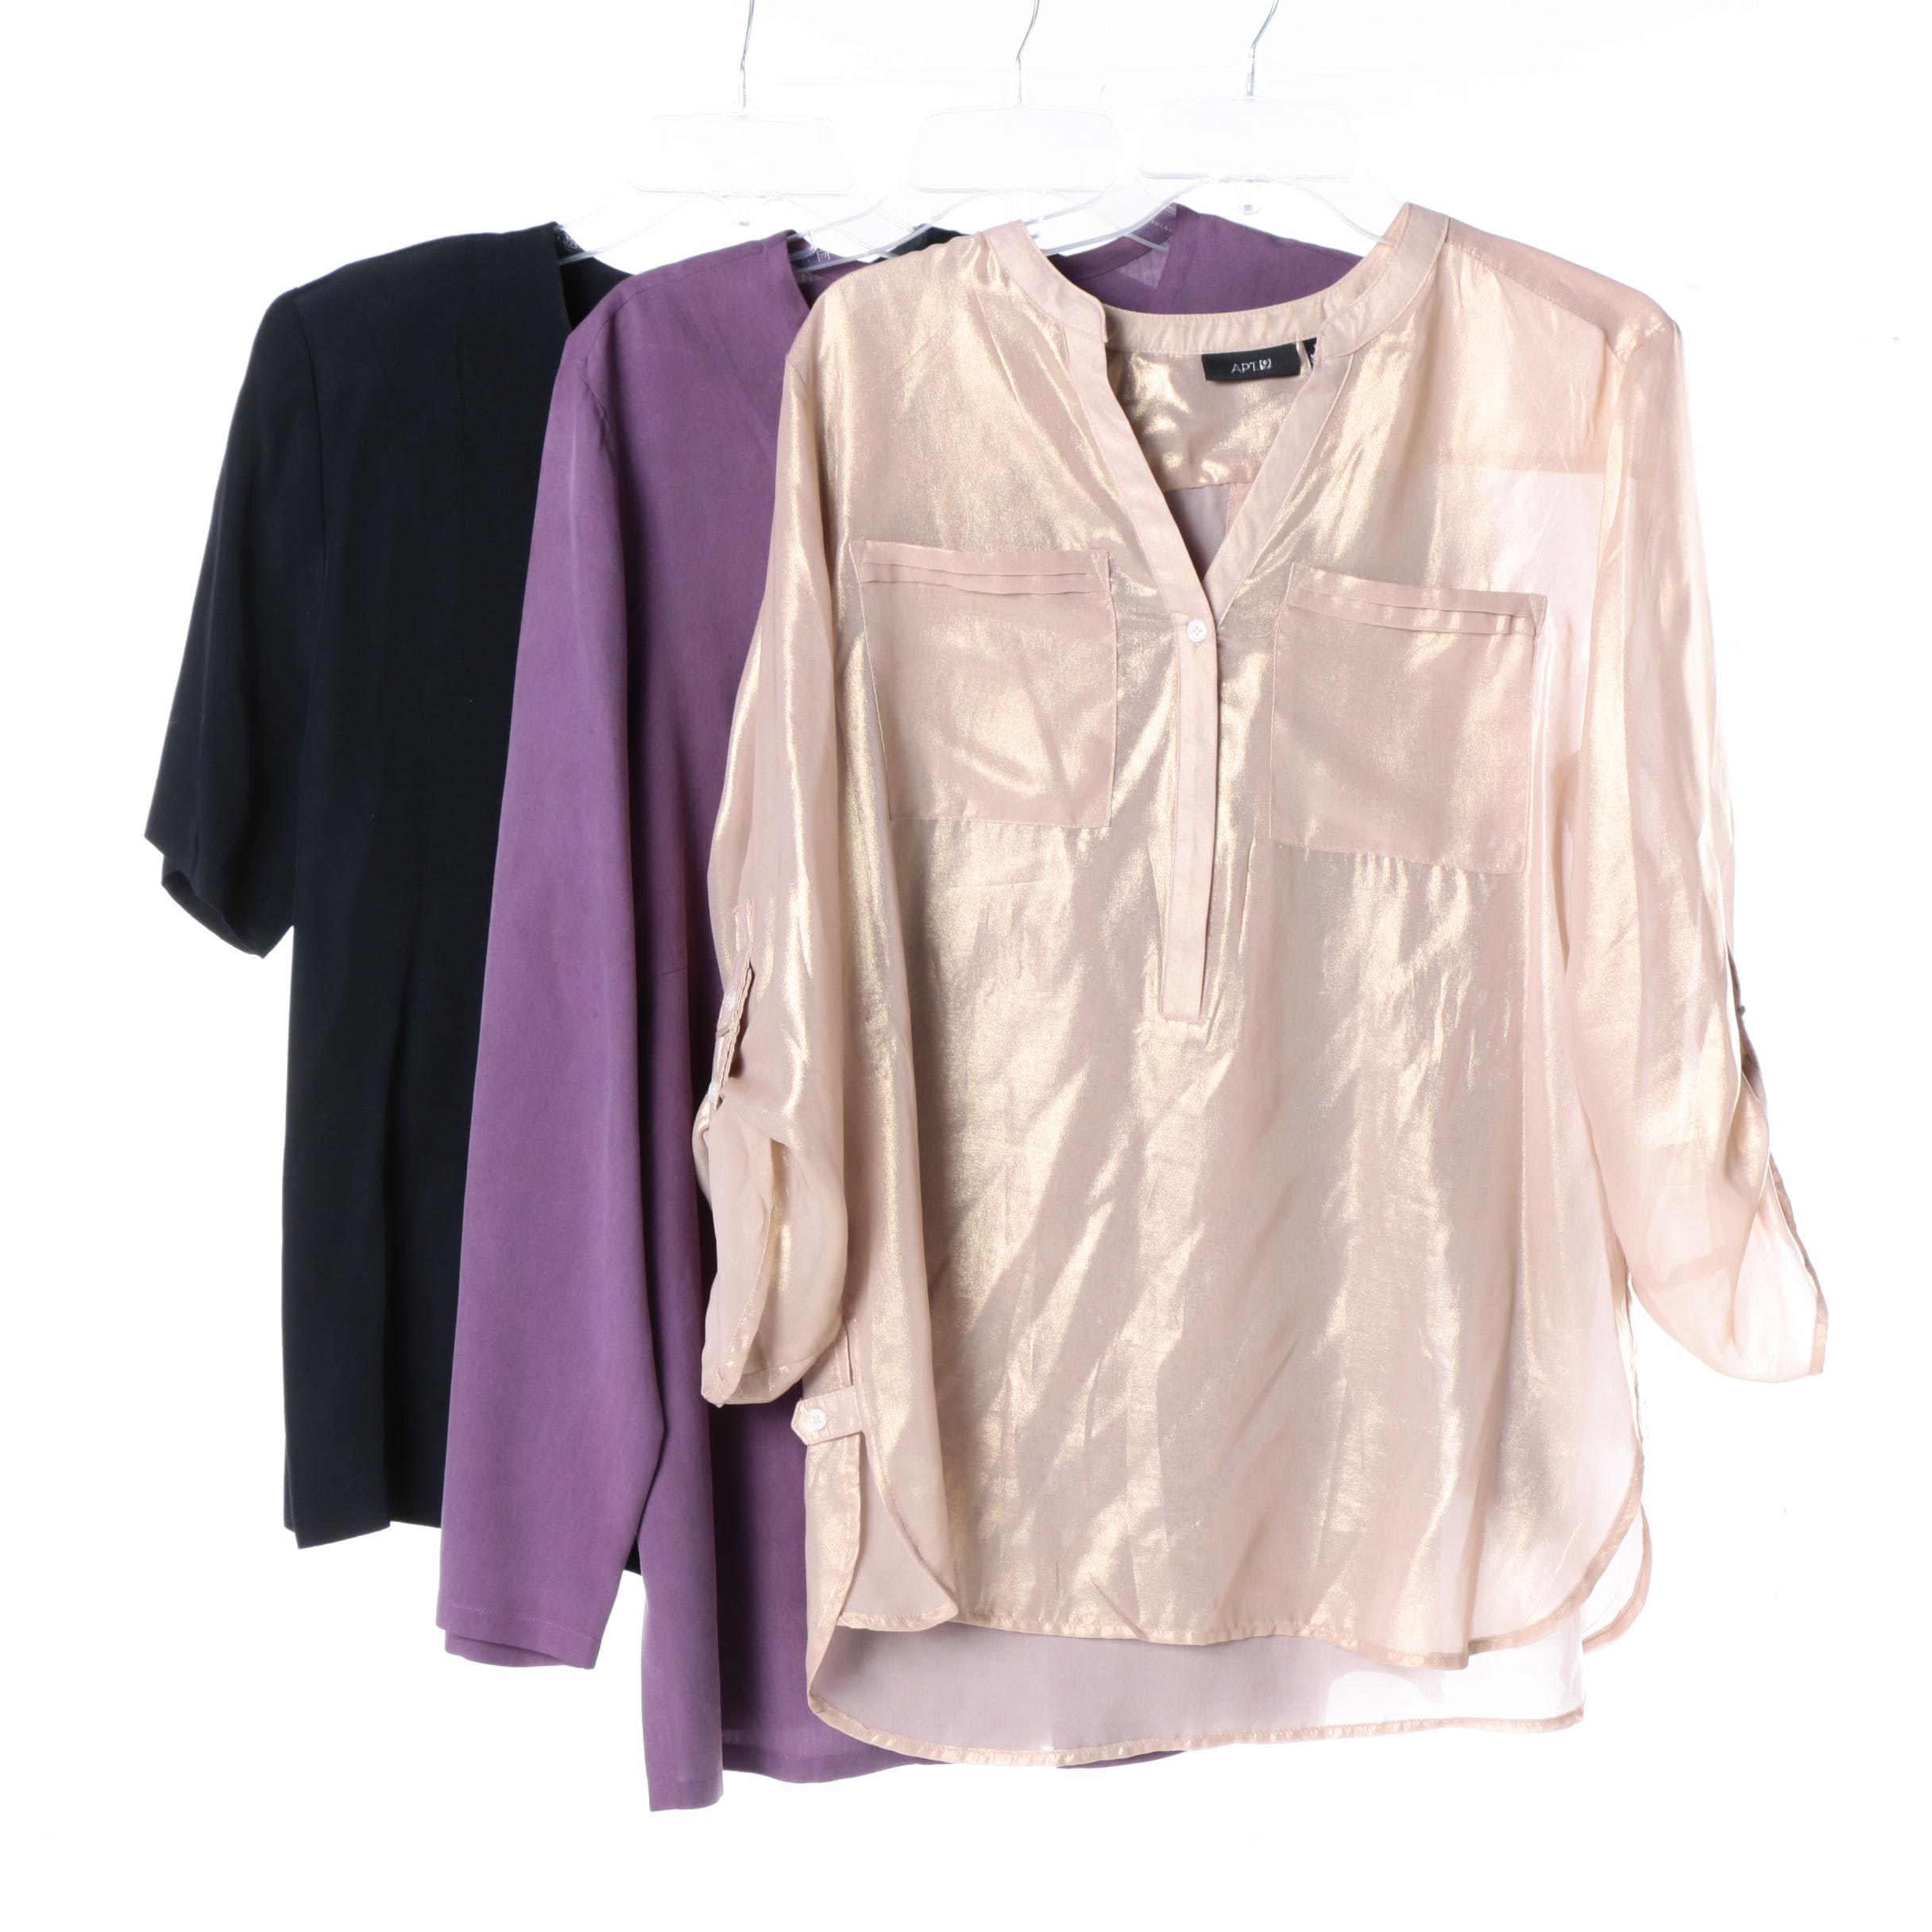 Women's Blouses, Including August Silk